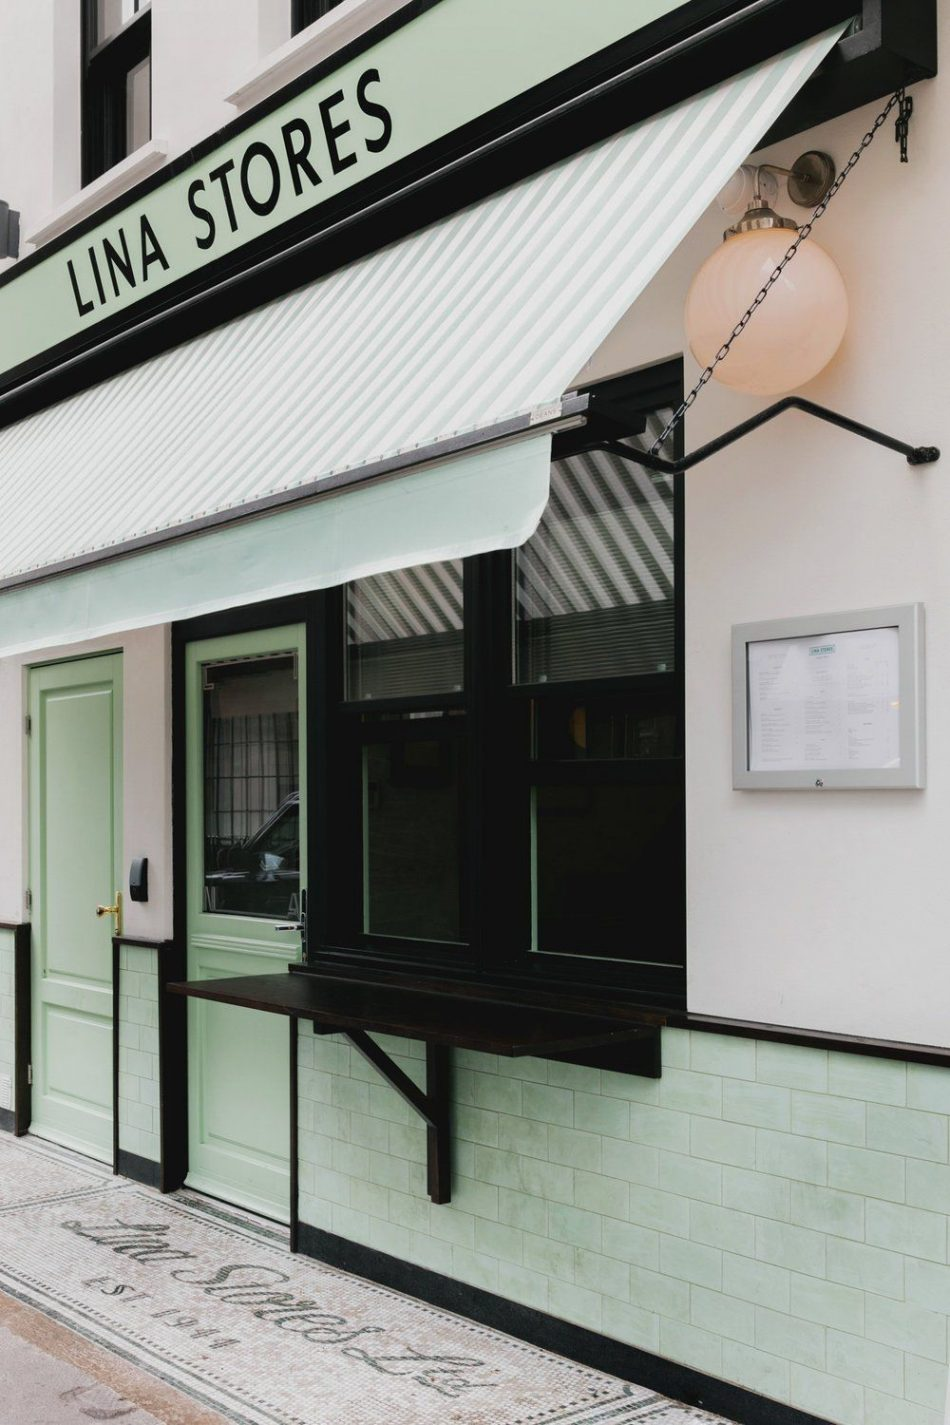 mid-century mid-century A Mid-Century restaurant creation for London Institution in Lina Stores a mid century restaurant creation for london institution lina stores 7 1